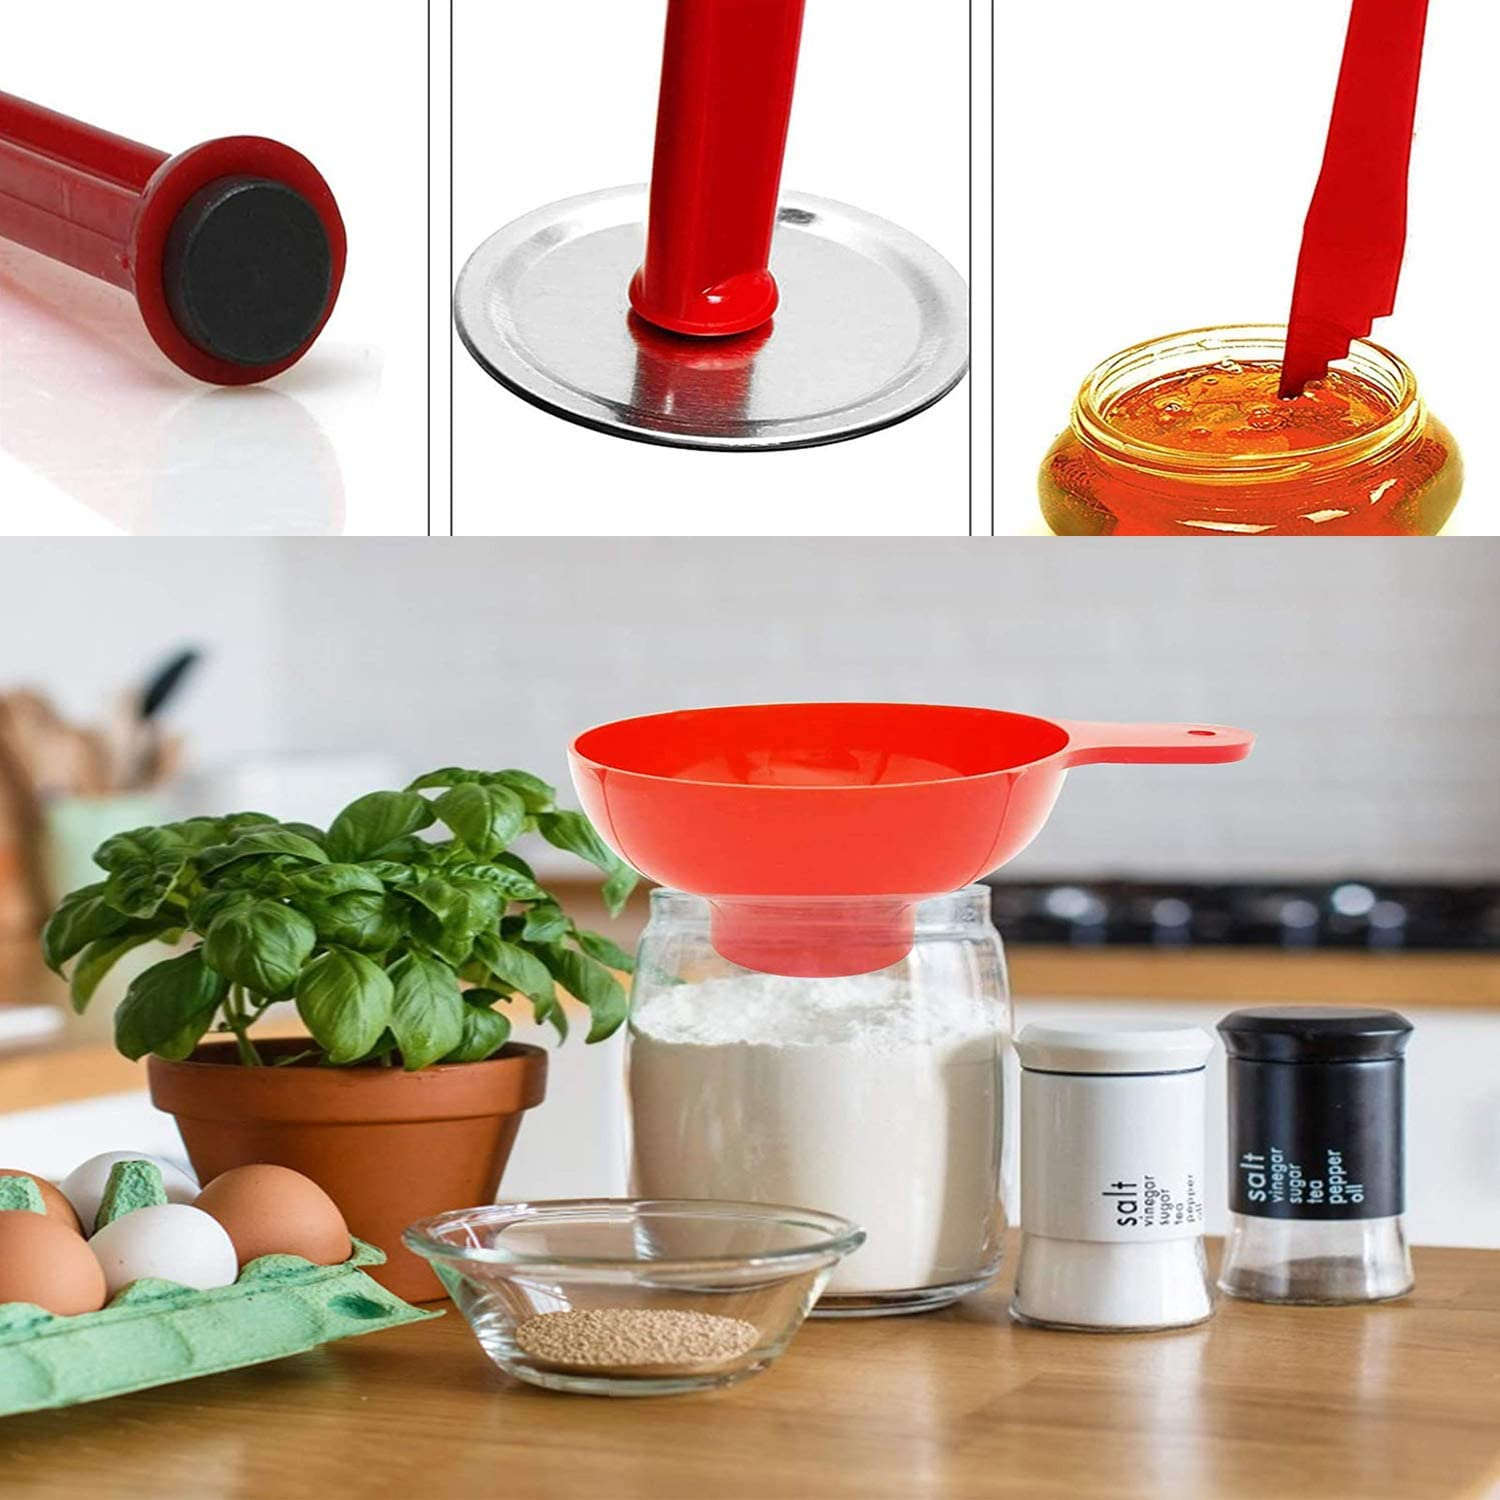 Red Kitchen Tool Anti-Scald Clip Suit Canning Kit Essentials Supplies 5 Pcs